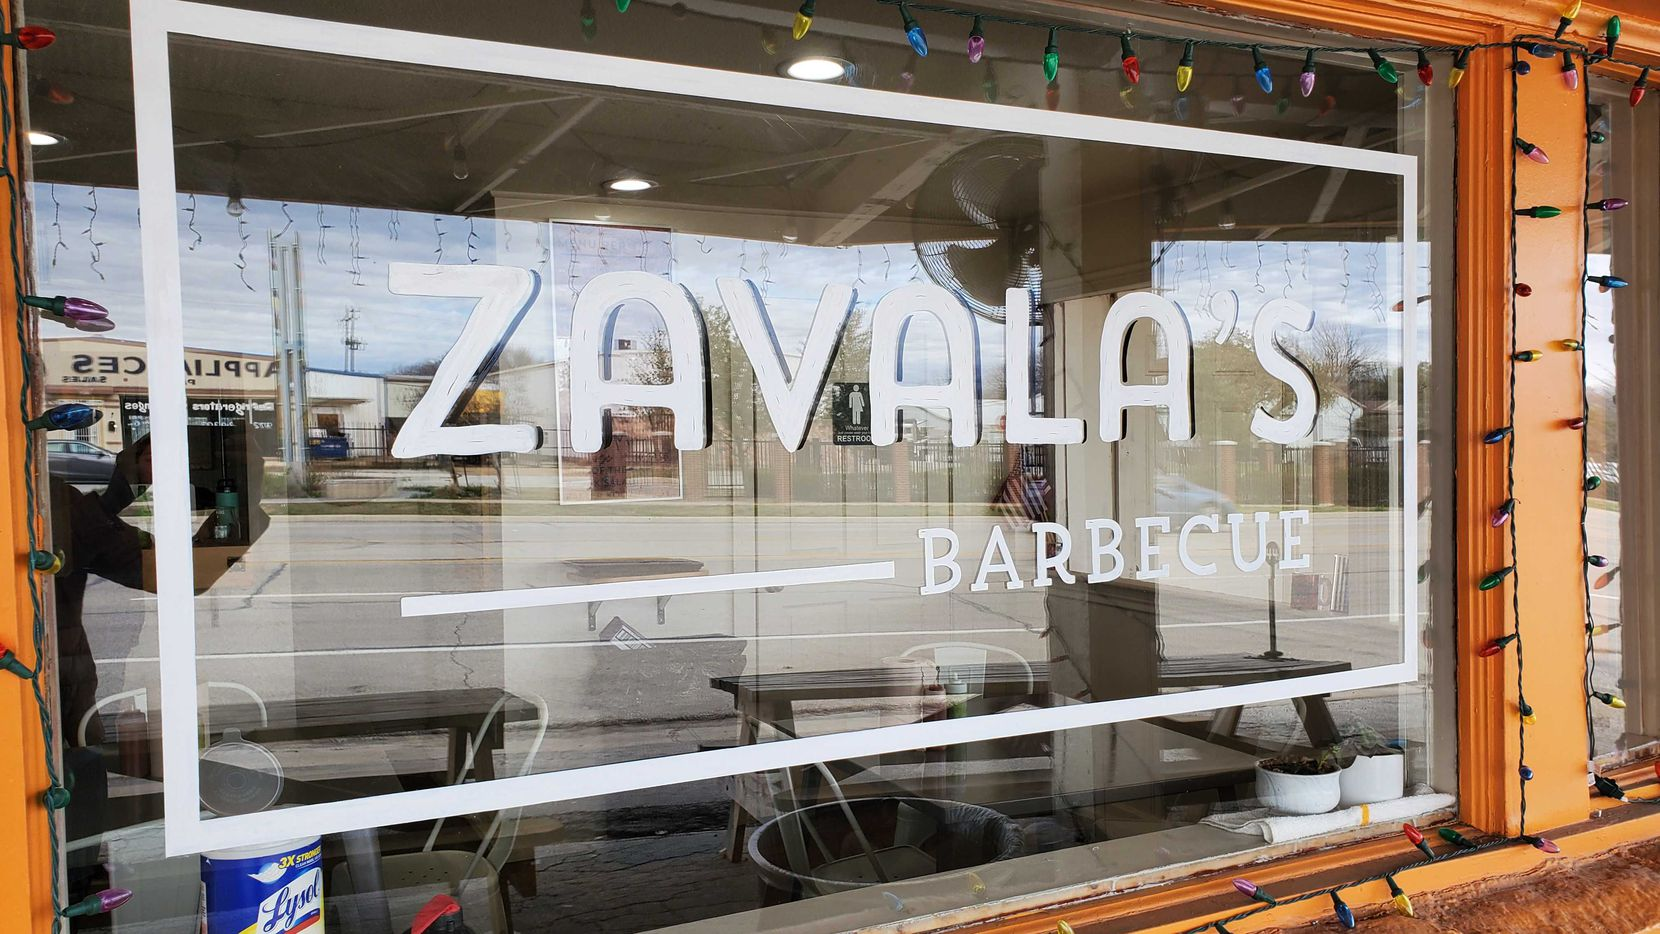 Zavala's Barbecue opened a permanent restaurant in Grand Prairie in 2019 and is now operating it as a to-go business.